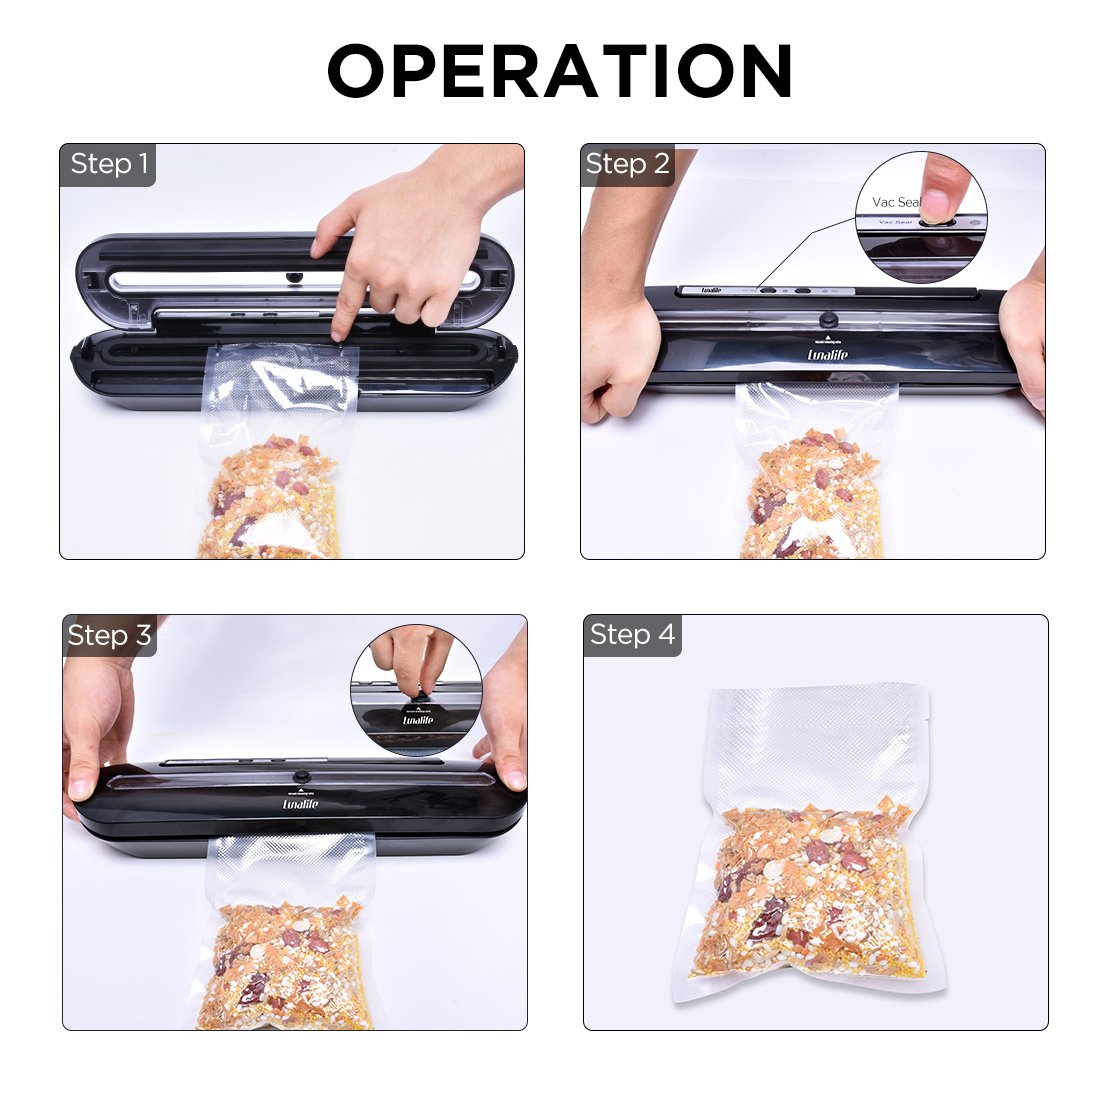 Vacuum Sealer Upgraded Automatic Vacuum Air Sealing System Preserve & Store Food Vacuo for Sous Vide Cooking Roll of Vacuum Bags (Black) by LunaLife (Image #3)